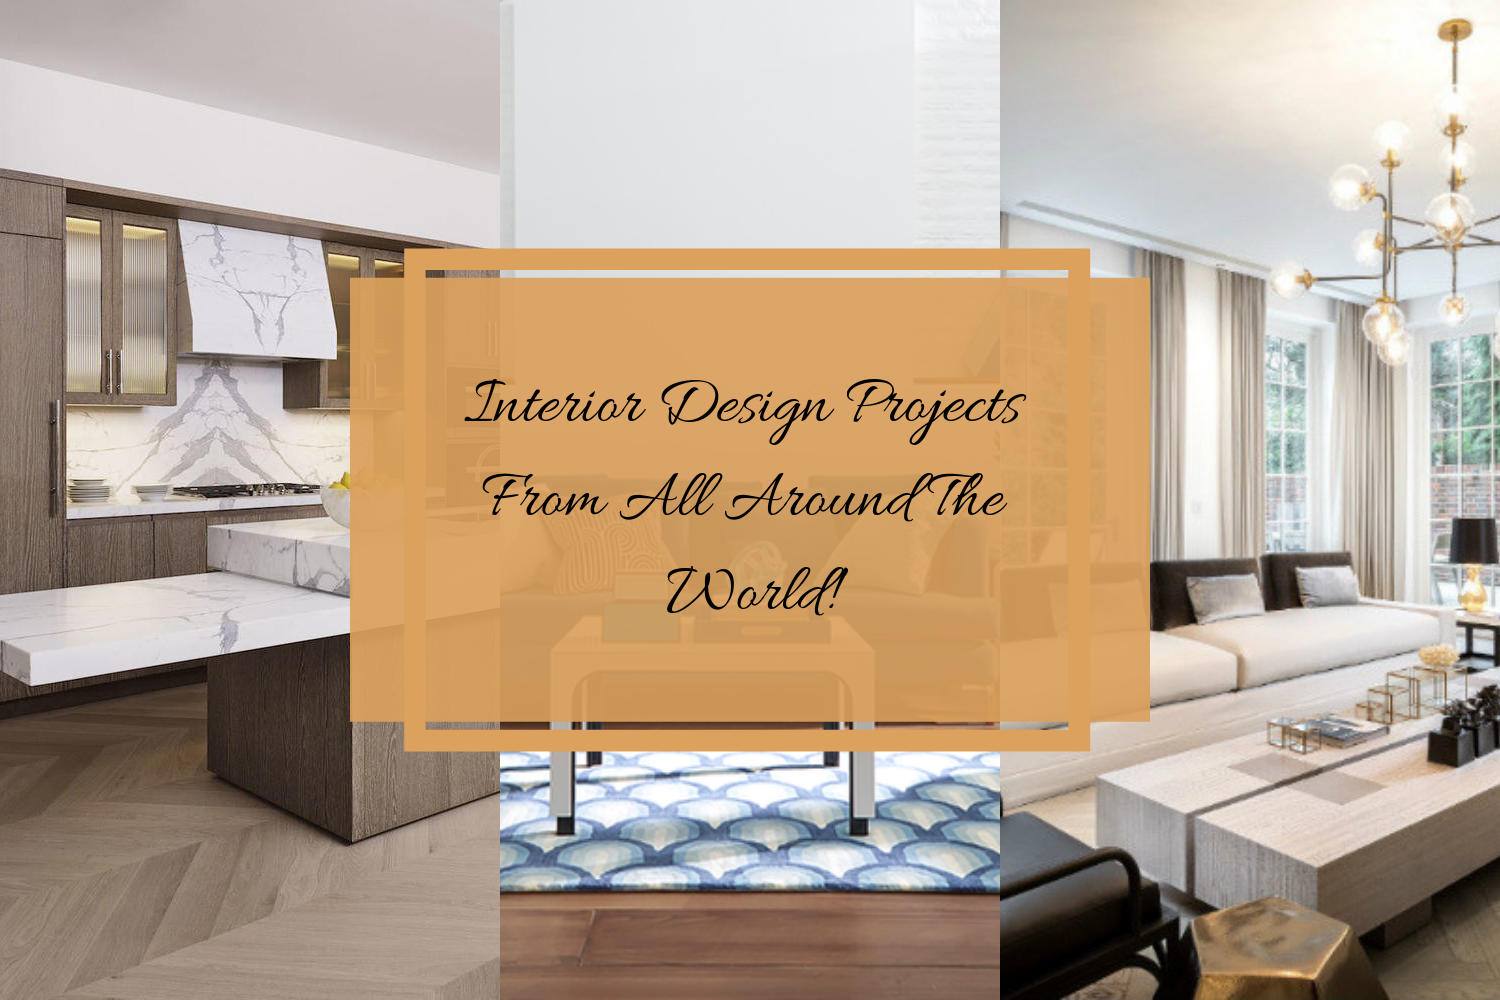 Interior Design Projects From All Around The World!